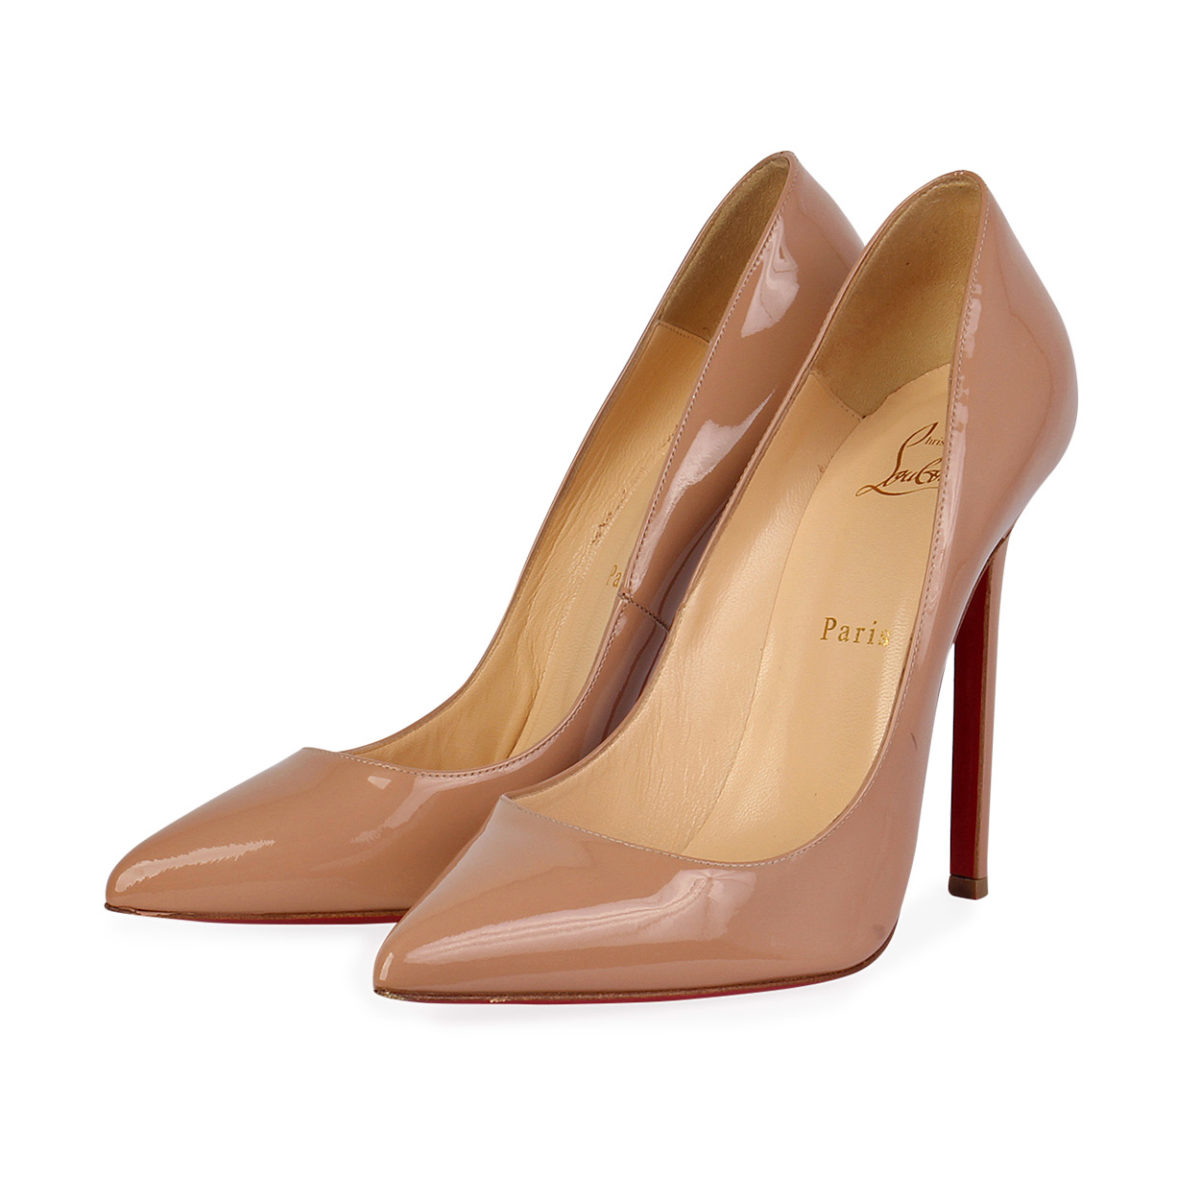 e24509f92a2 CHRISTIAN LOUBOUTIN Patent Pigalle Pumps Nude - S  40.5 (7)